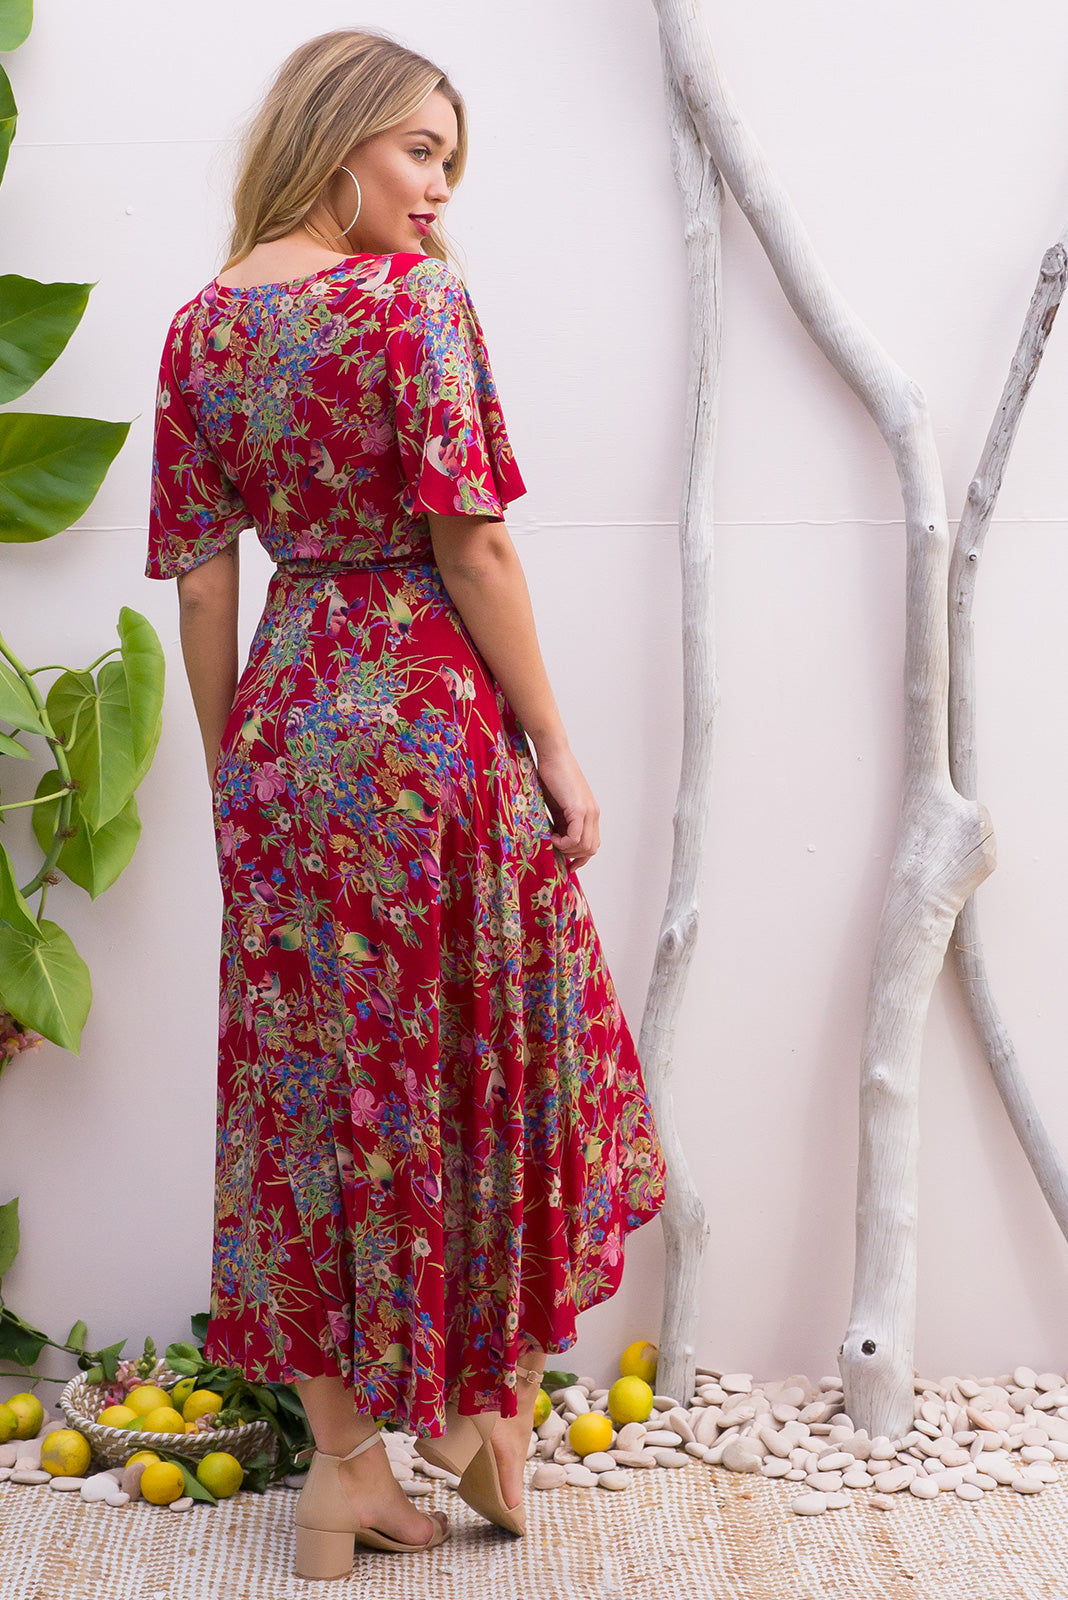 Petal Crimson Honey Eater Maxi Wrap Dress features a bold red base with a floral bohemian print on a soft woven rayon and has a petal sleeve and wrap around shape